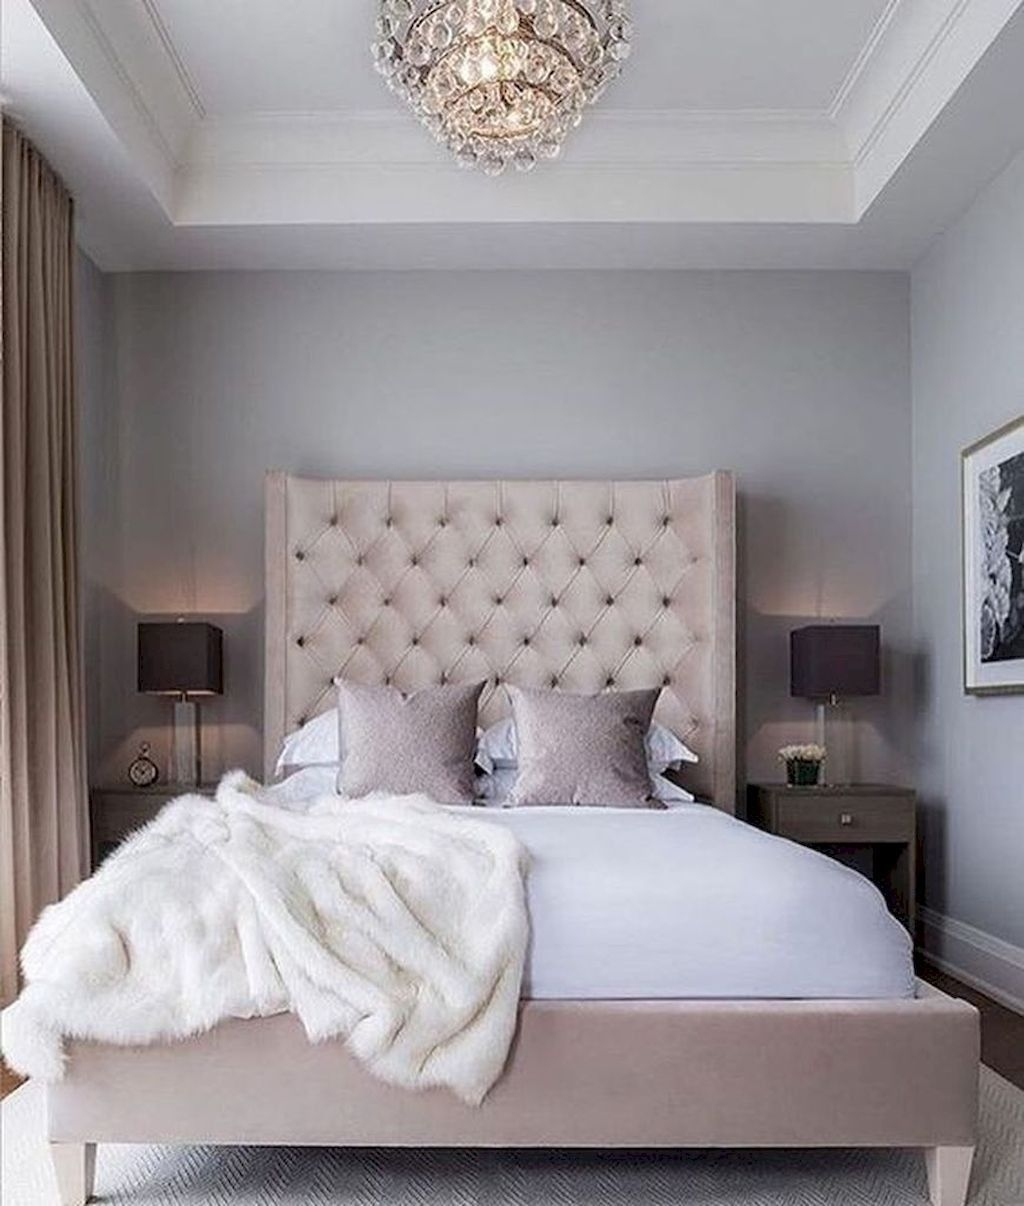 Small Master Bedroom Design With Elegant Style 02